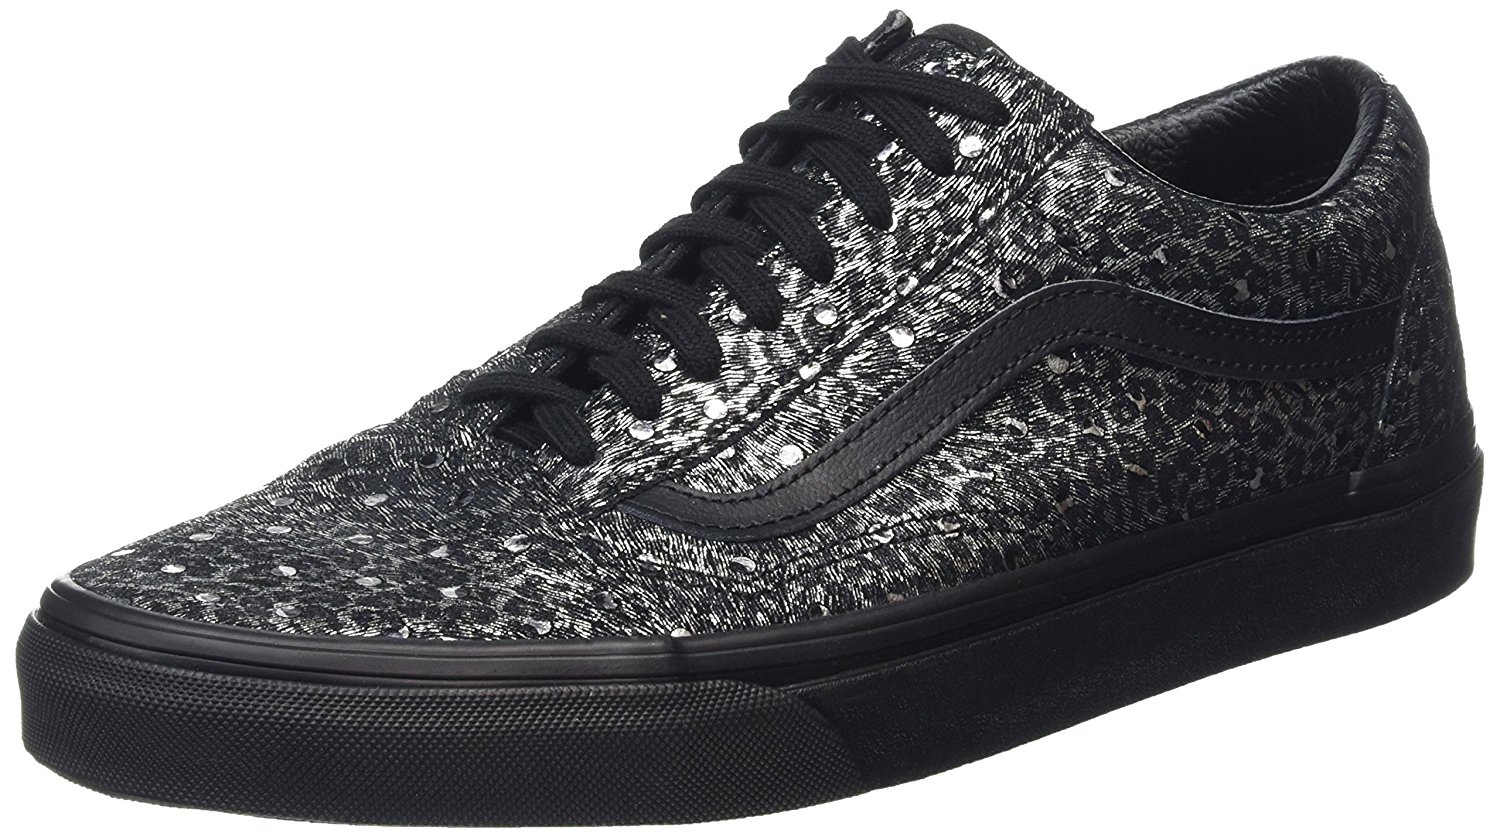 fb70a1b6be6fd0 Vans - Vans Womens Old Skool Cup (Luxe Tweed) Fabric Low Top Lace Up  Fashion Sneakers - Walmart.com